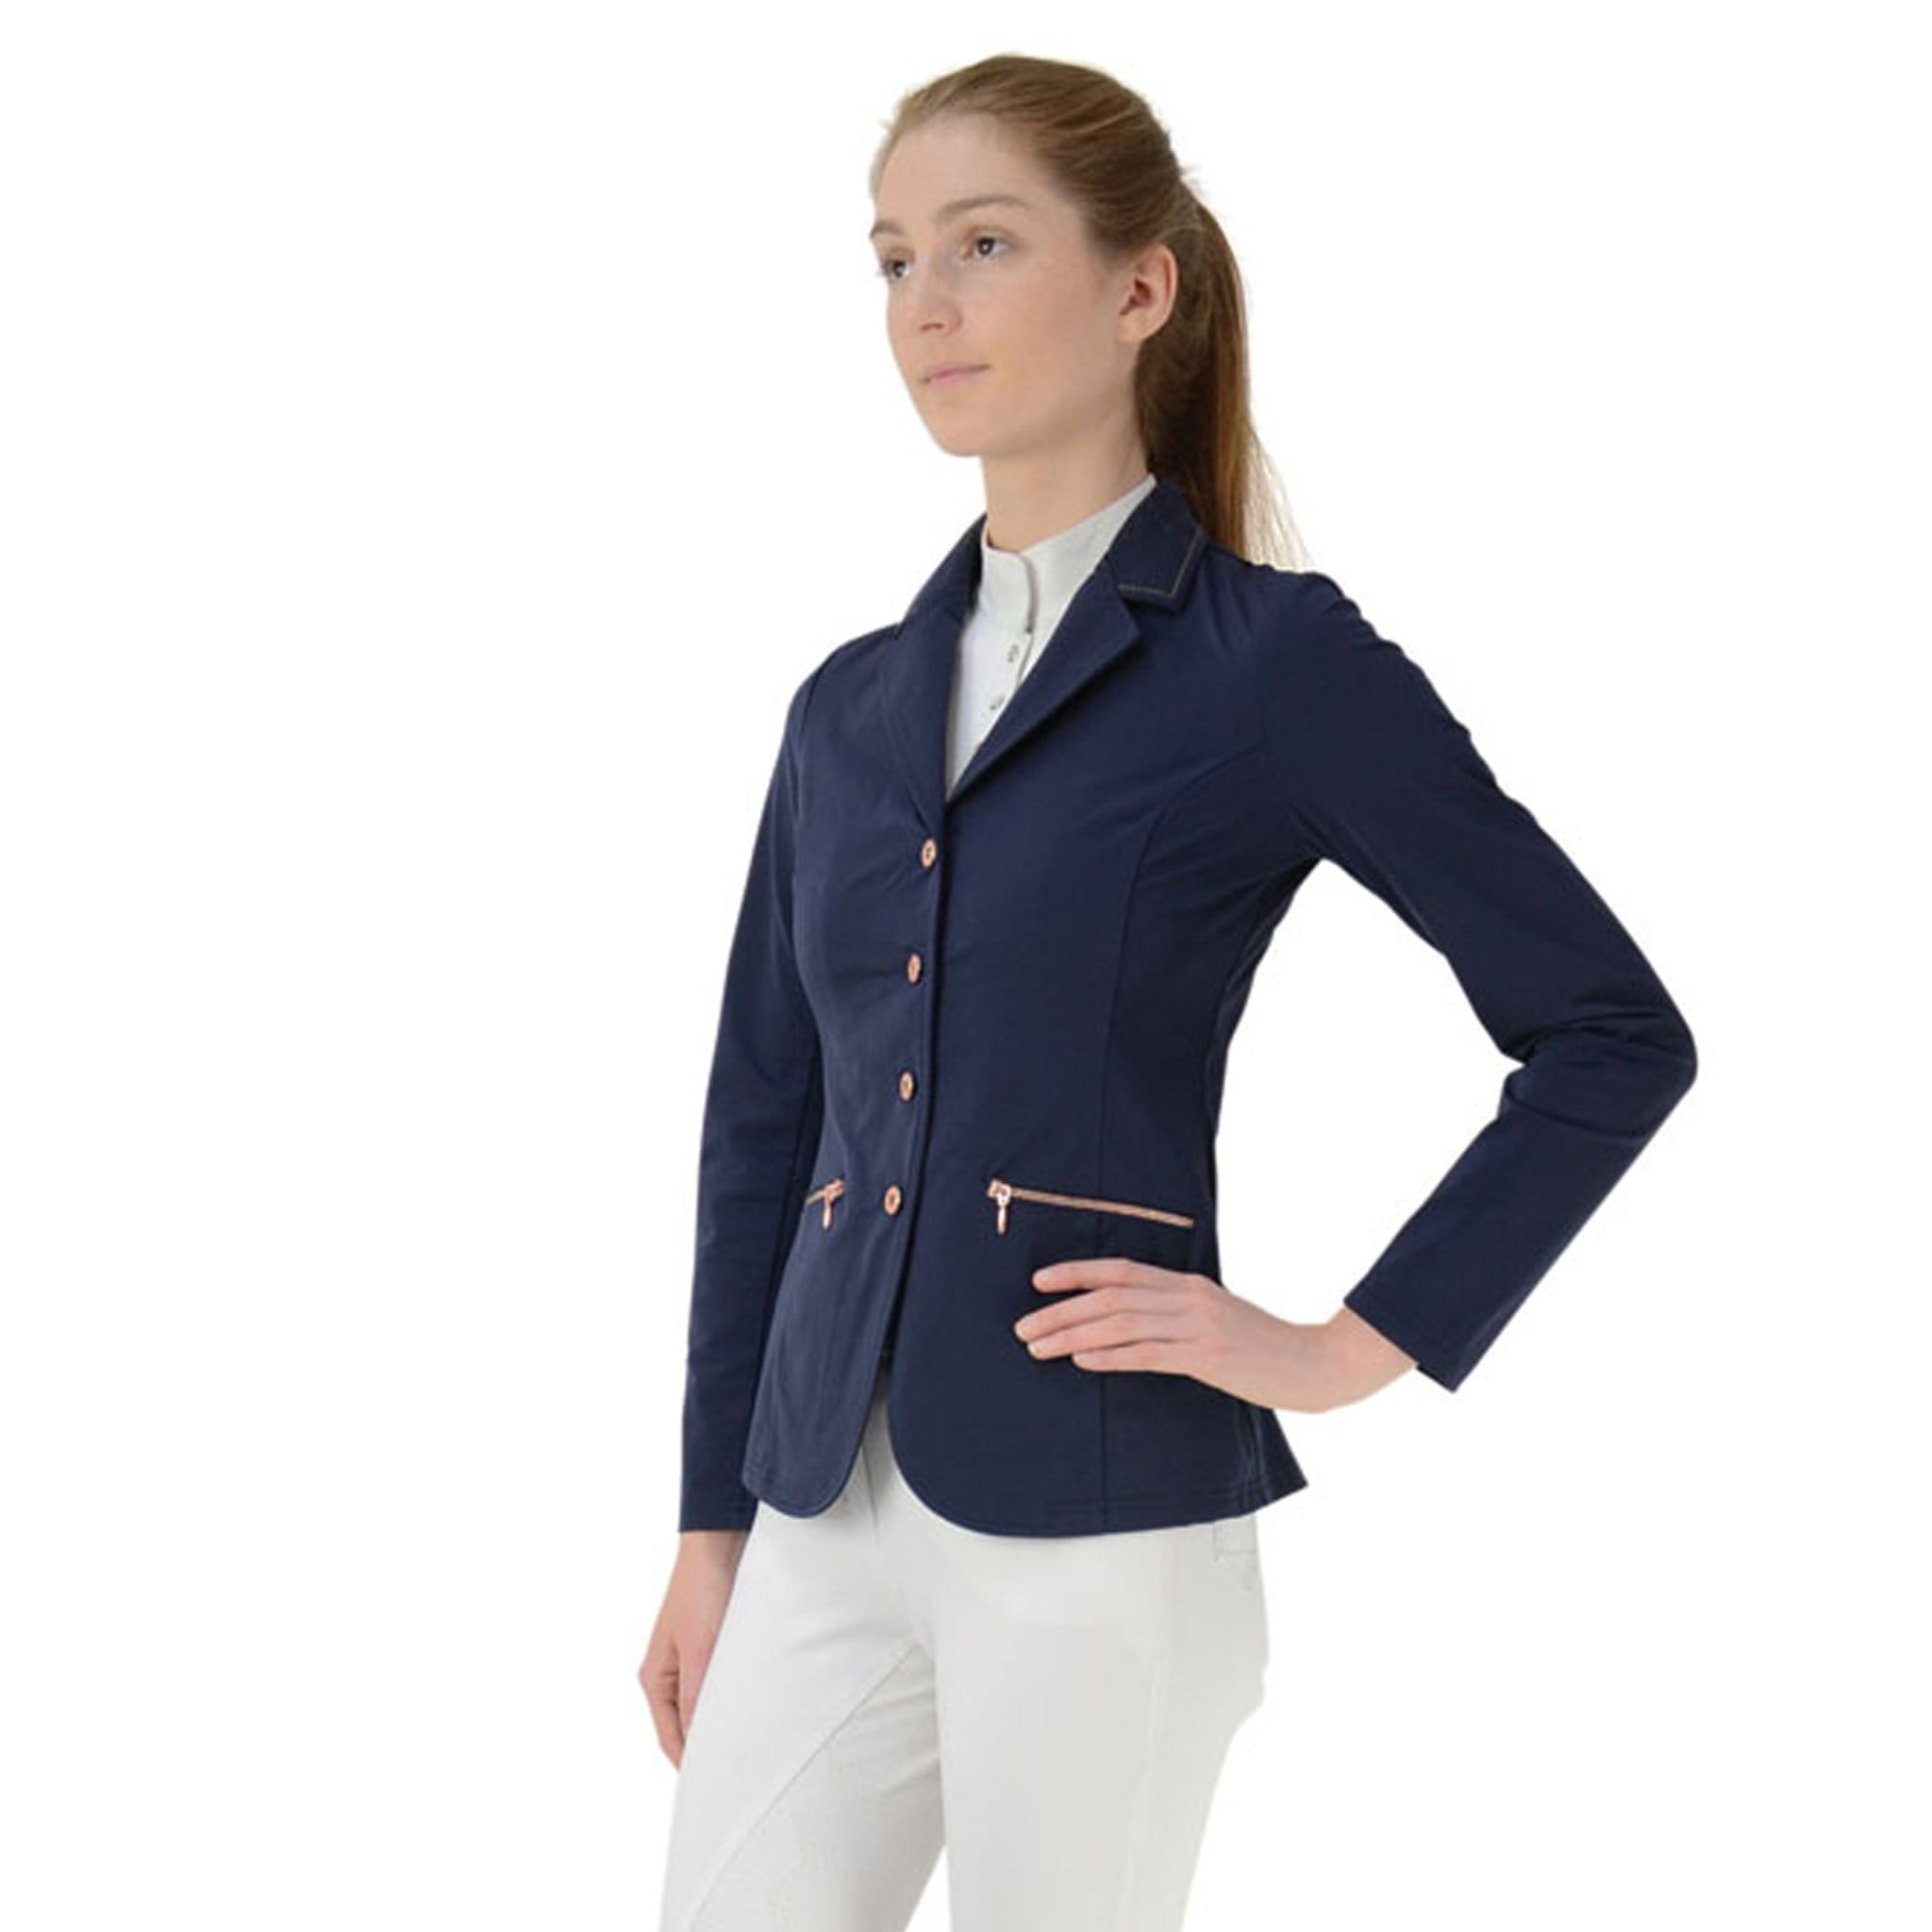 HyFASHION Rosalind Rose Gold Show Jacket Front 24370.